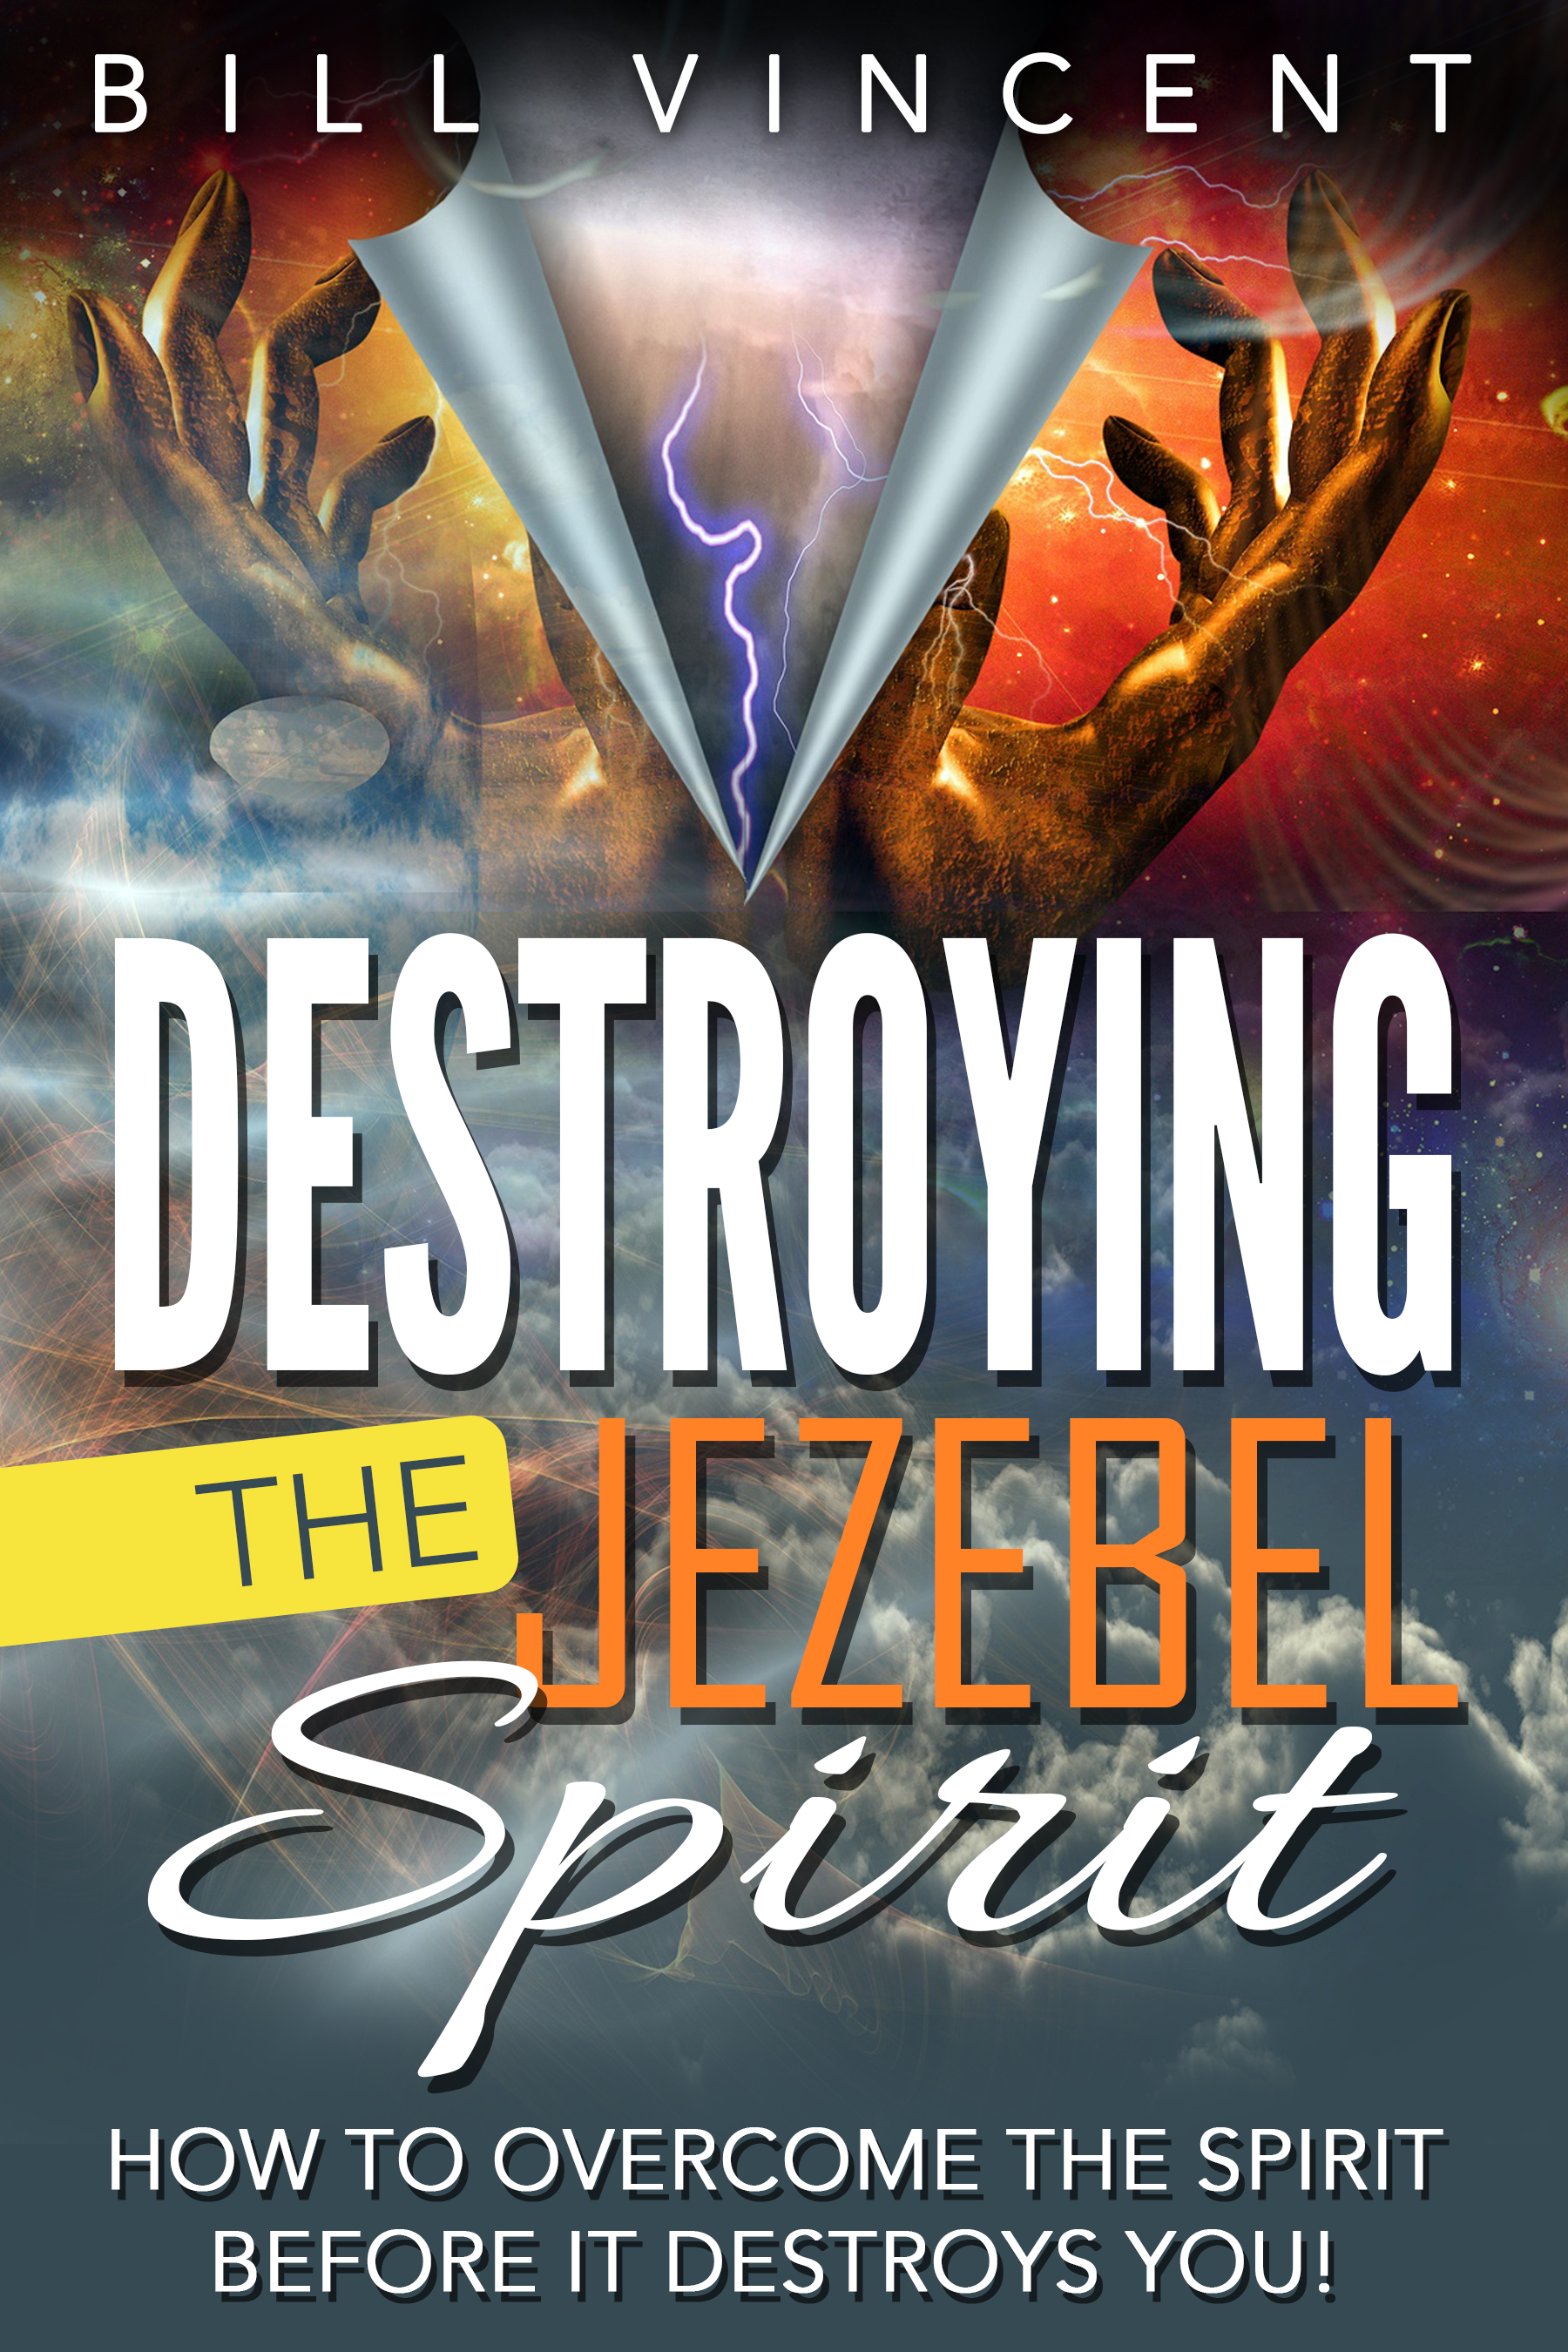 Destroying the jezebel spirit: how to overcome the spirit before it destroys you!